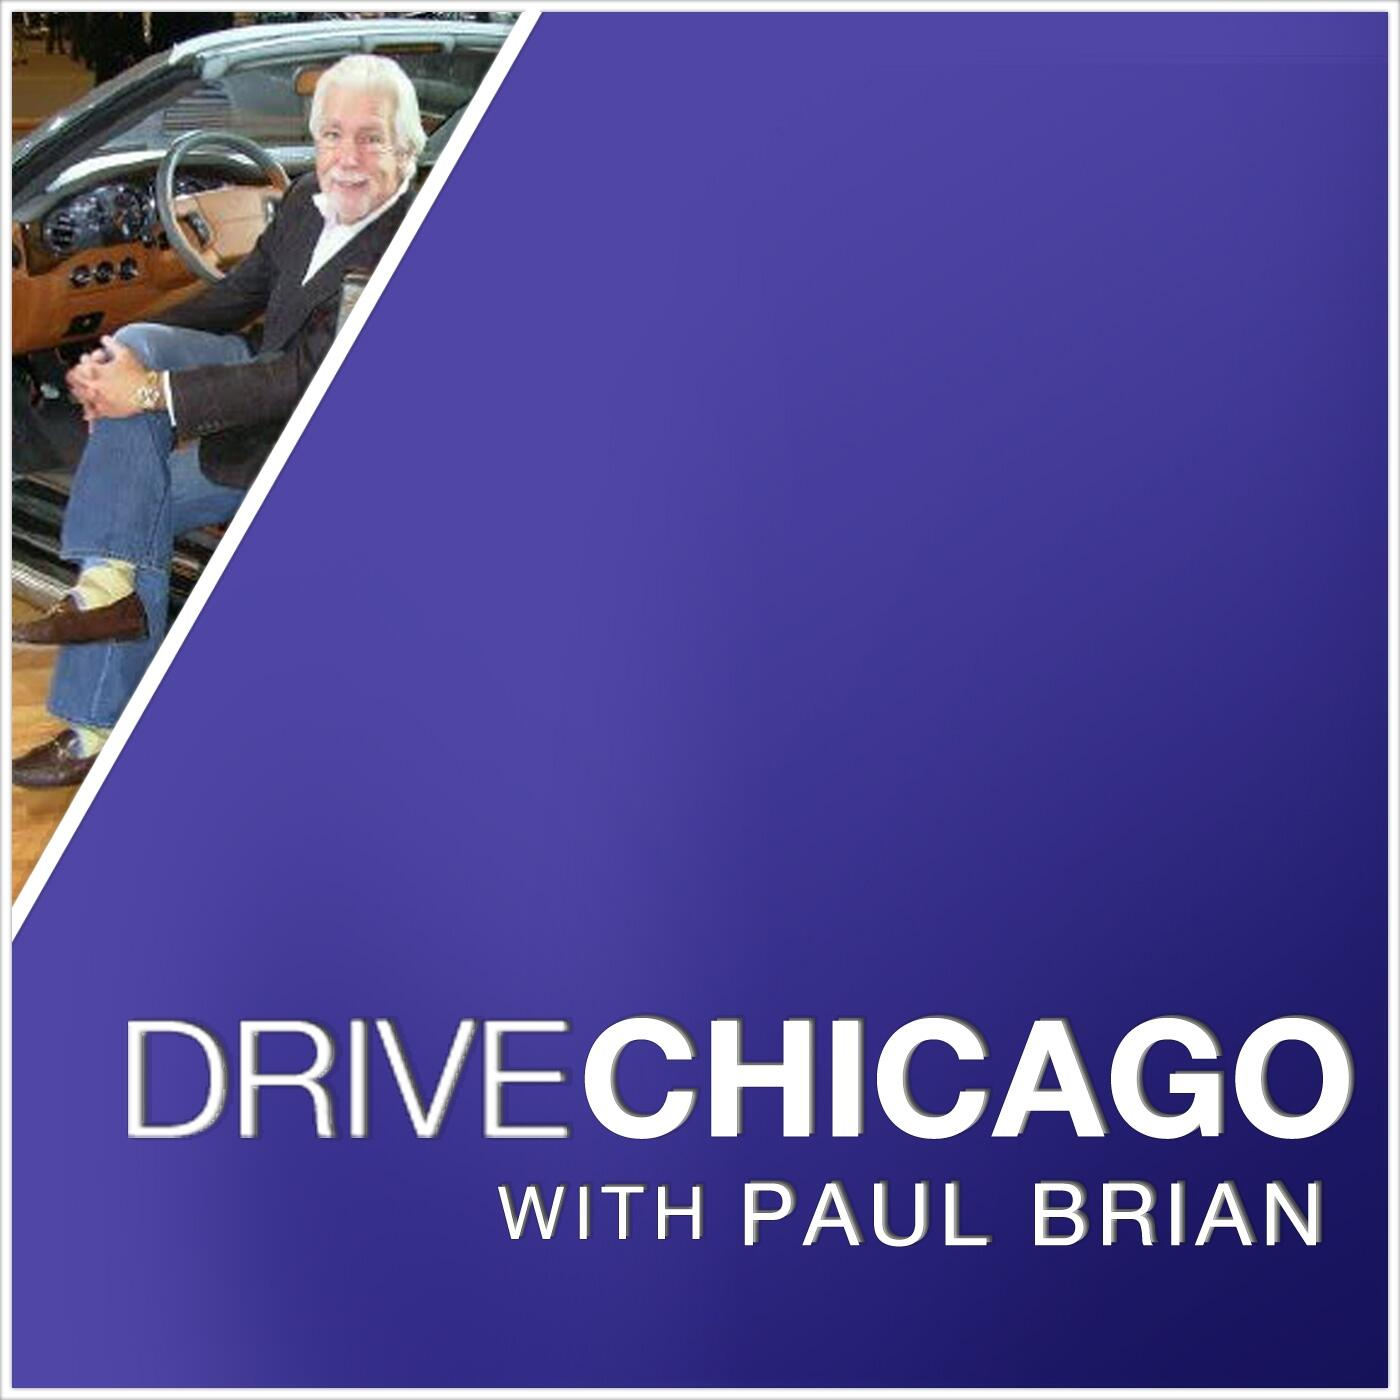 Drive Chicago with Paul Brian